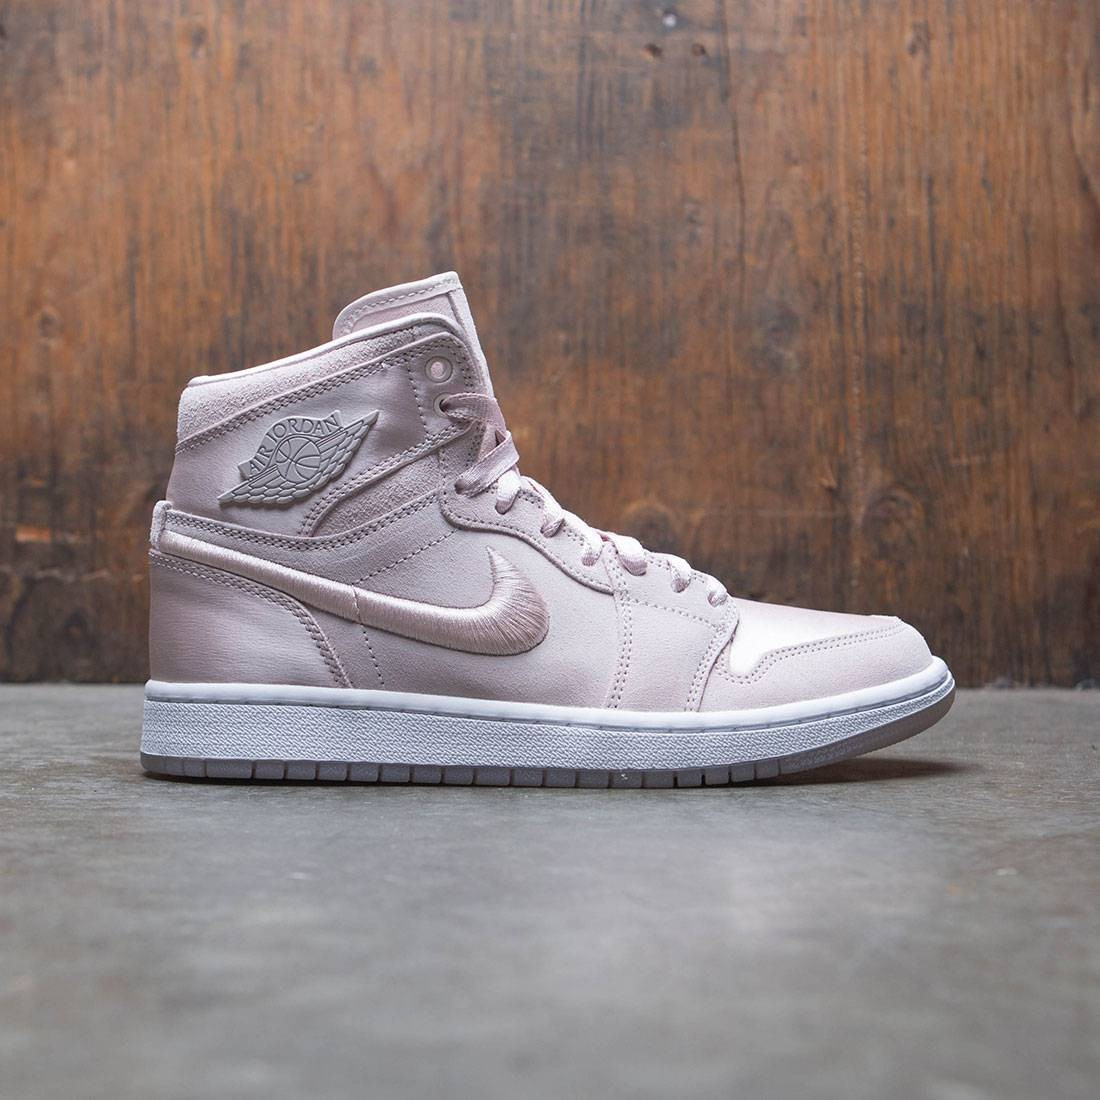 check out 870be b826b jordan women air jordan 1 retro high summer of high silt red white metallic  gold